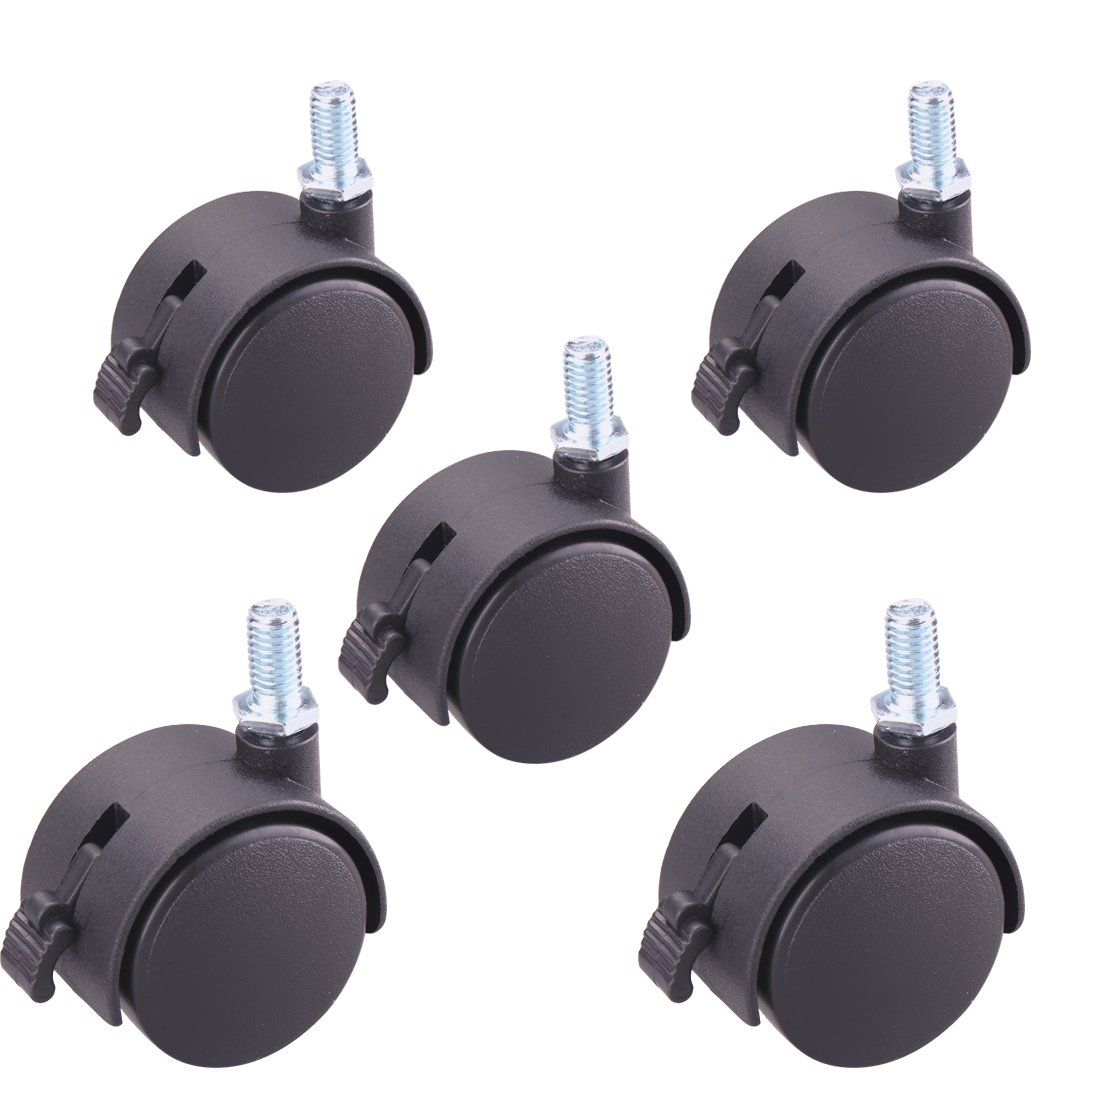 Copapa 2 Inch Black PlasticReplacement Office Chair Wheels Twin Wheel M10x15mm Threaded Stem Brake Swivel Nylon Casters 5pcs 2 Inch Brake M8x15mm Threaded Stem